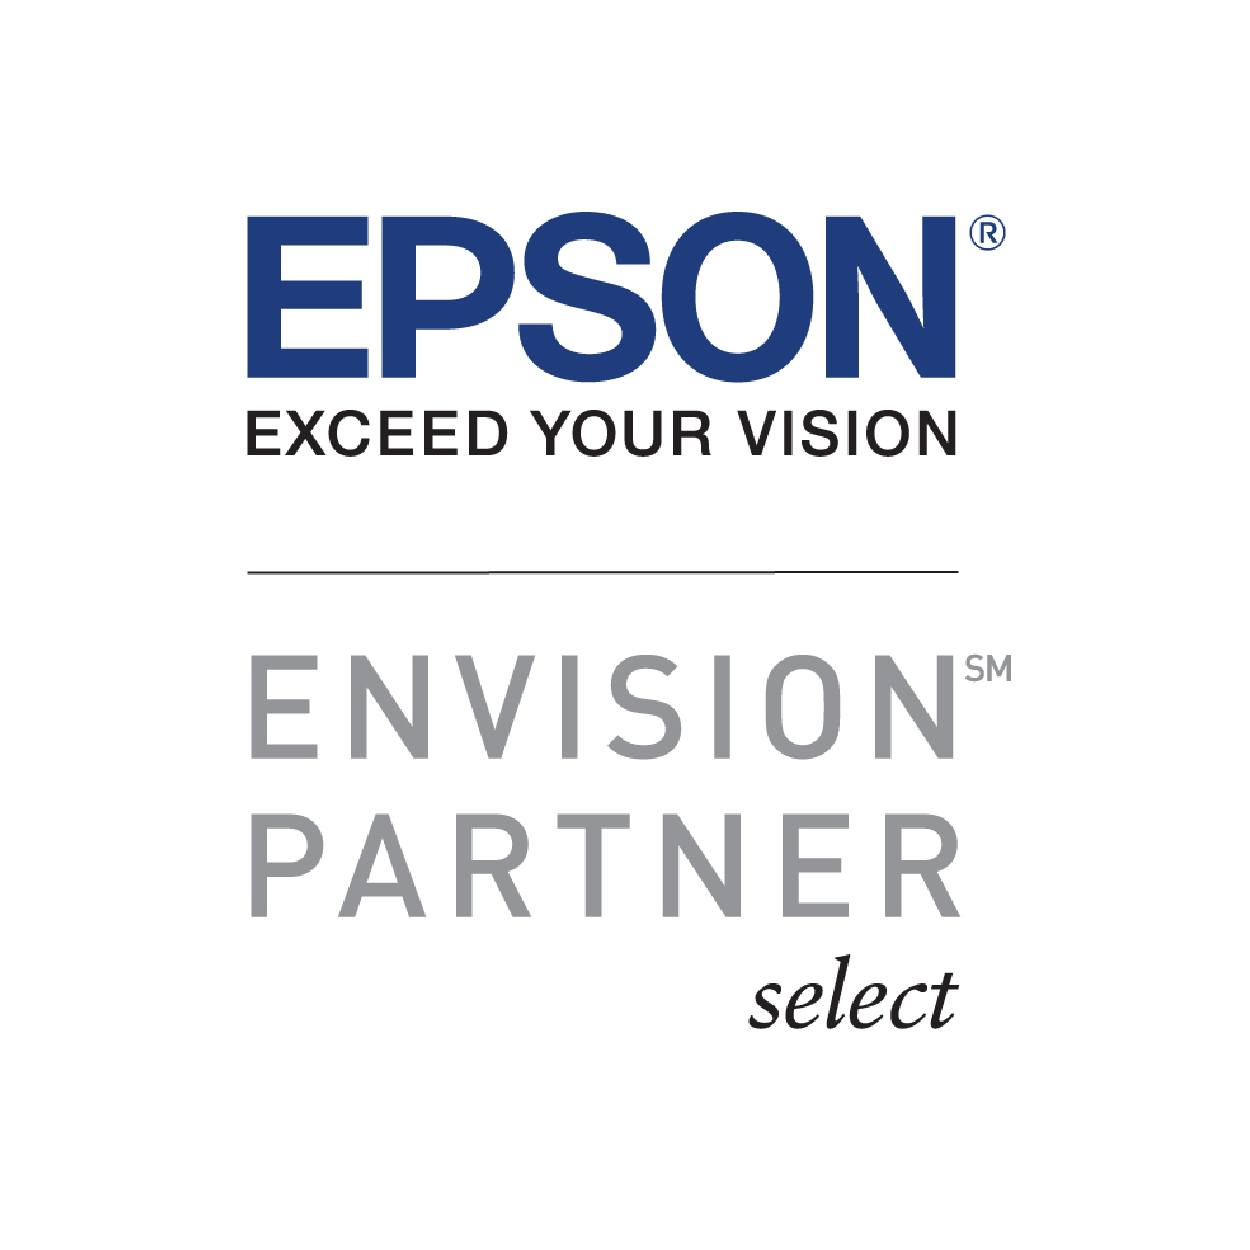 Epson-Envision-Select-Partner